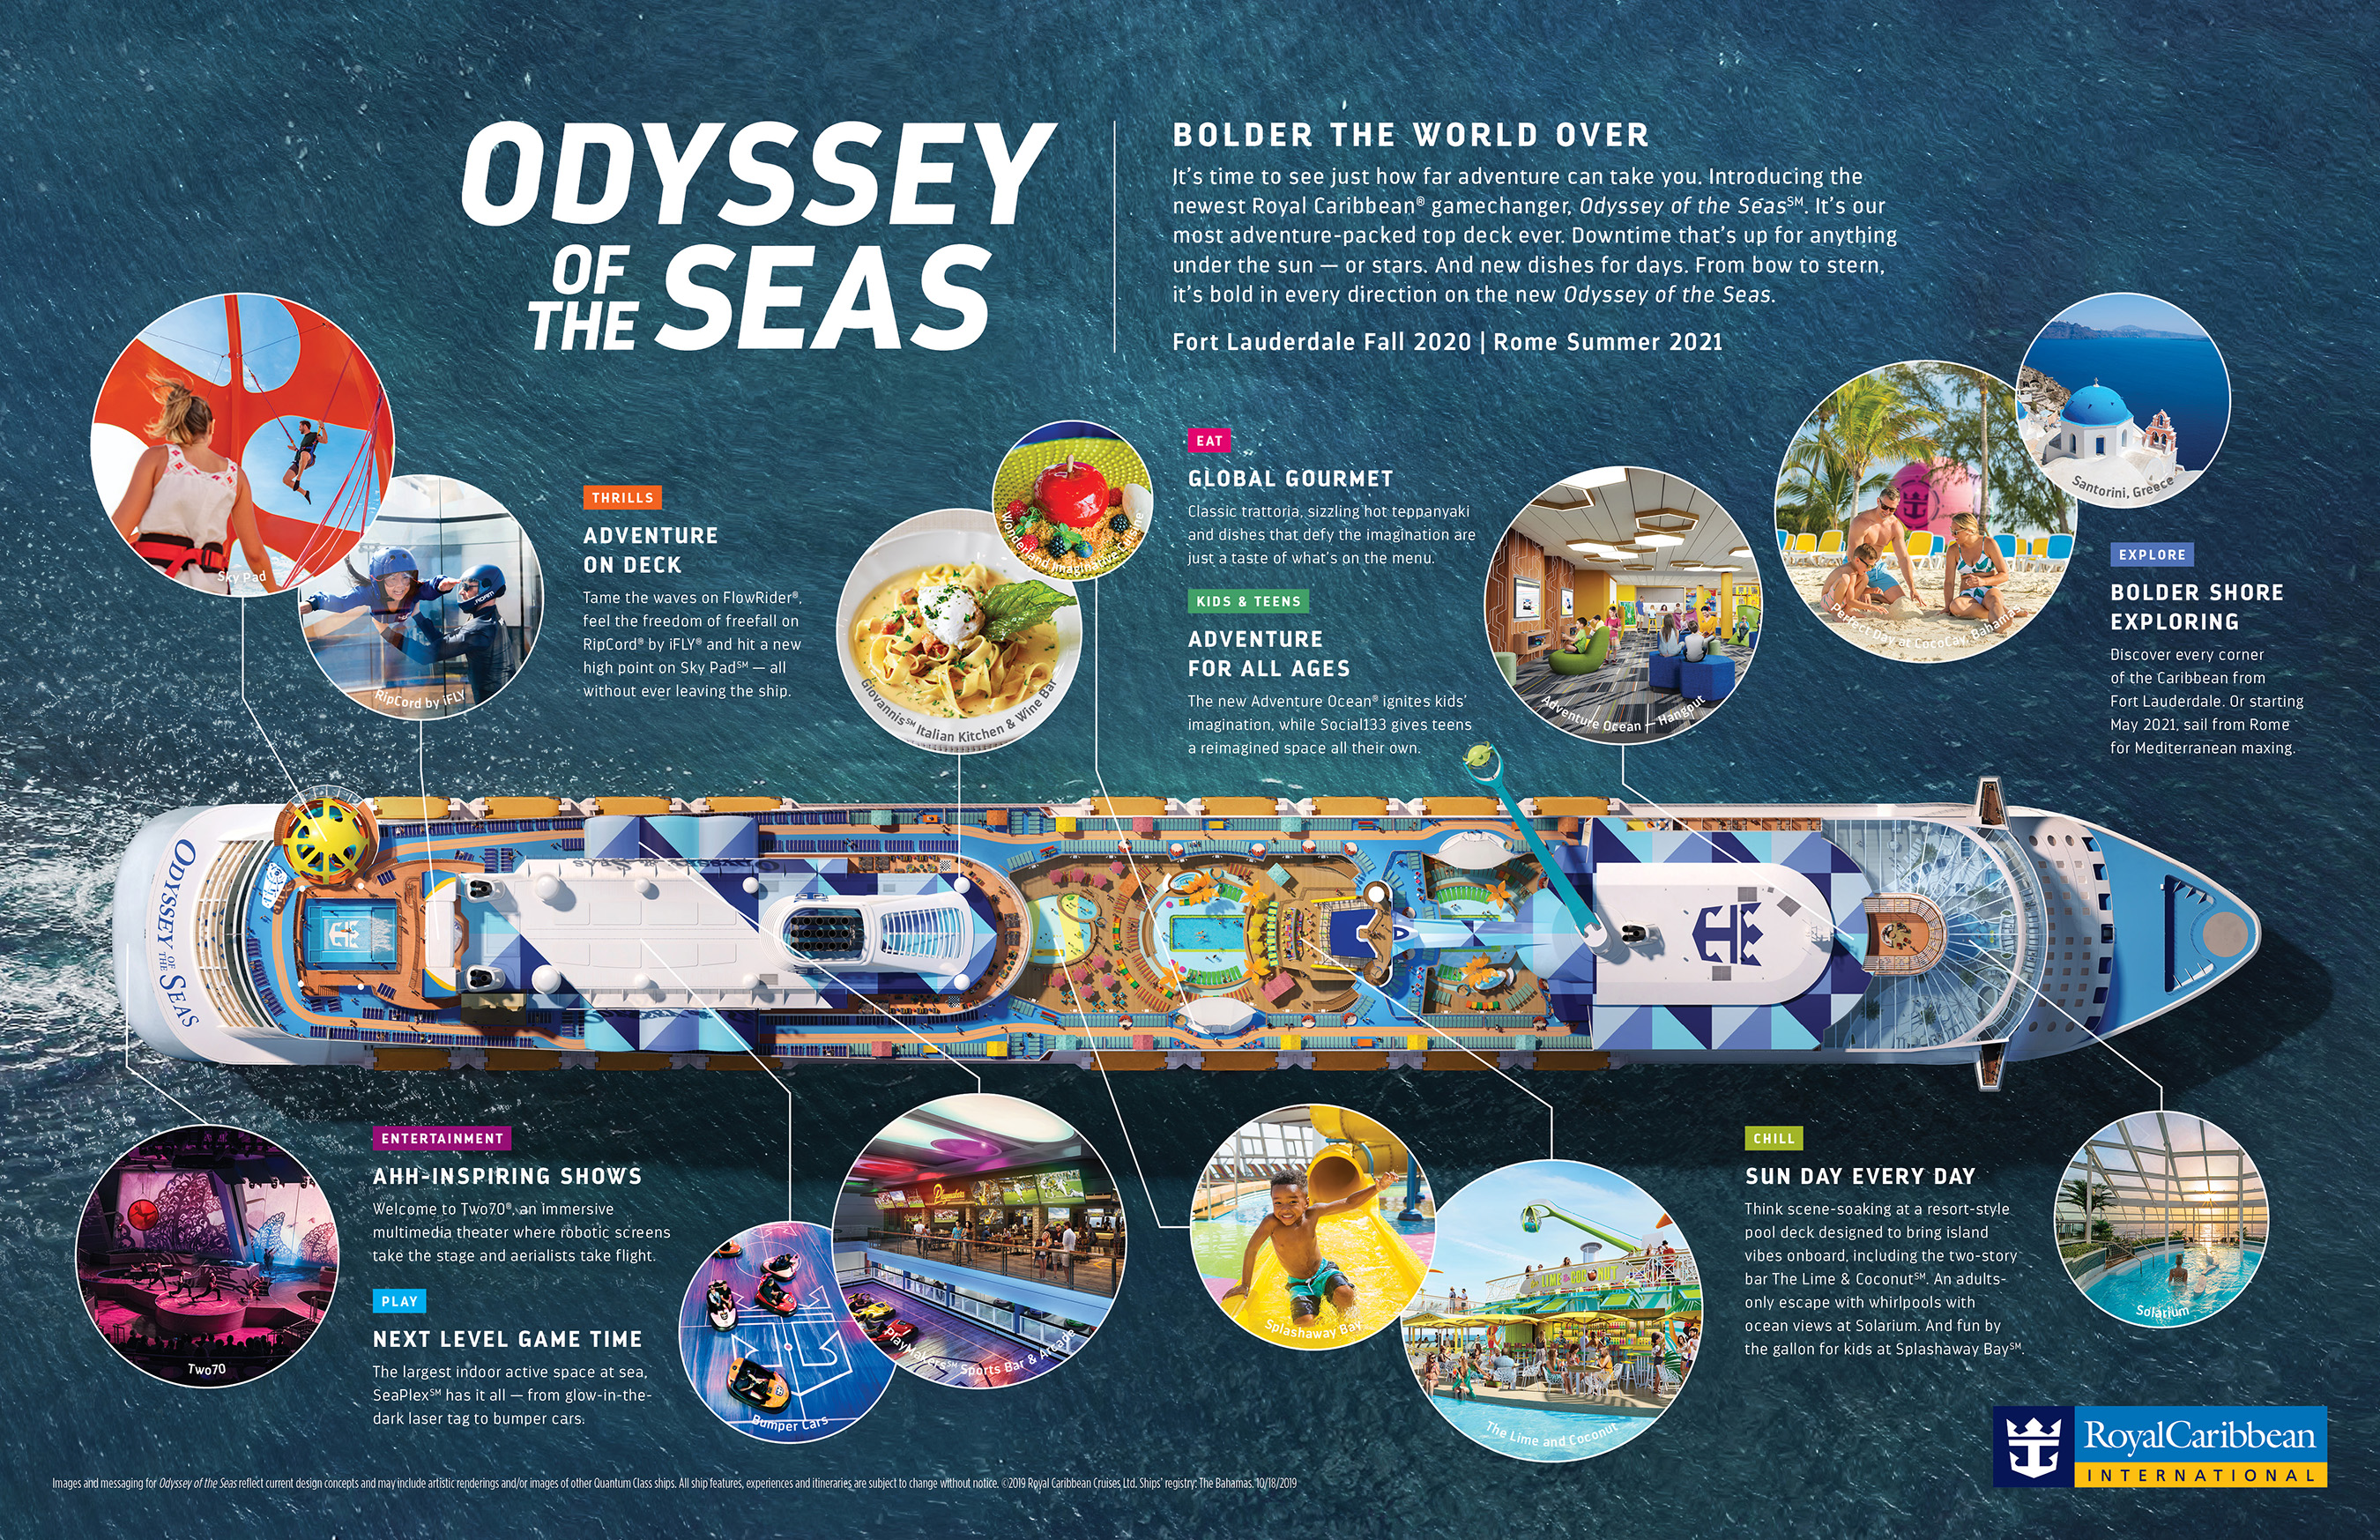 Royal Caribbean's Odyssey of the Seas will tout a brand-new look to match the fleet's most action-packed top deck to date, and a mix of record-holding hits and groundbreaking firsts for a game-changing cruise vacation. The second Quantum Ultra Class ship arrives to Fort Lauderdale November 2020.